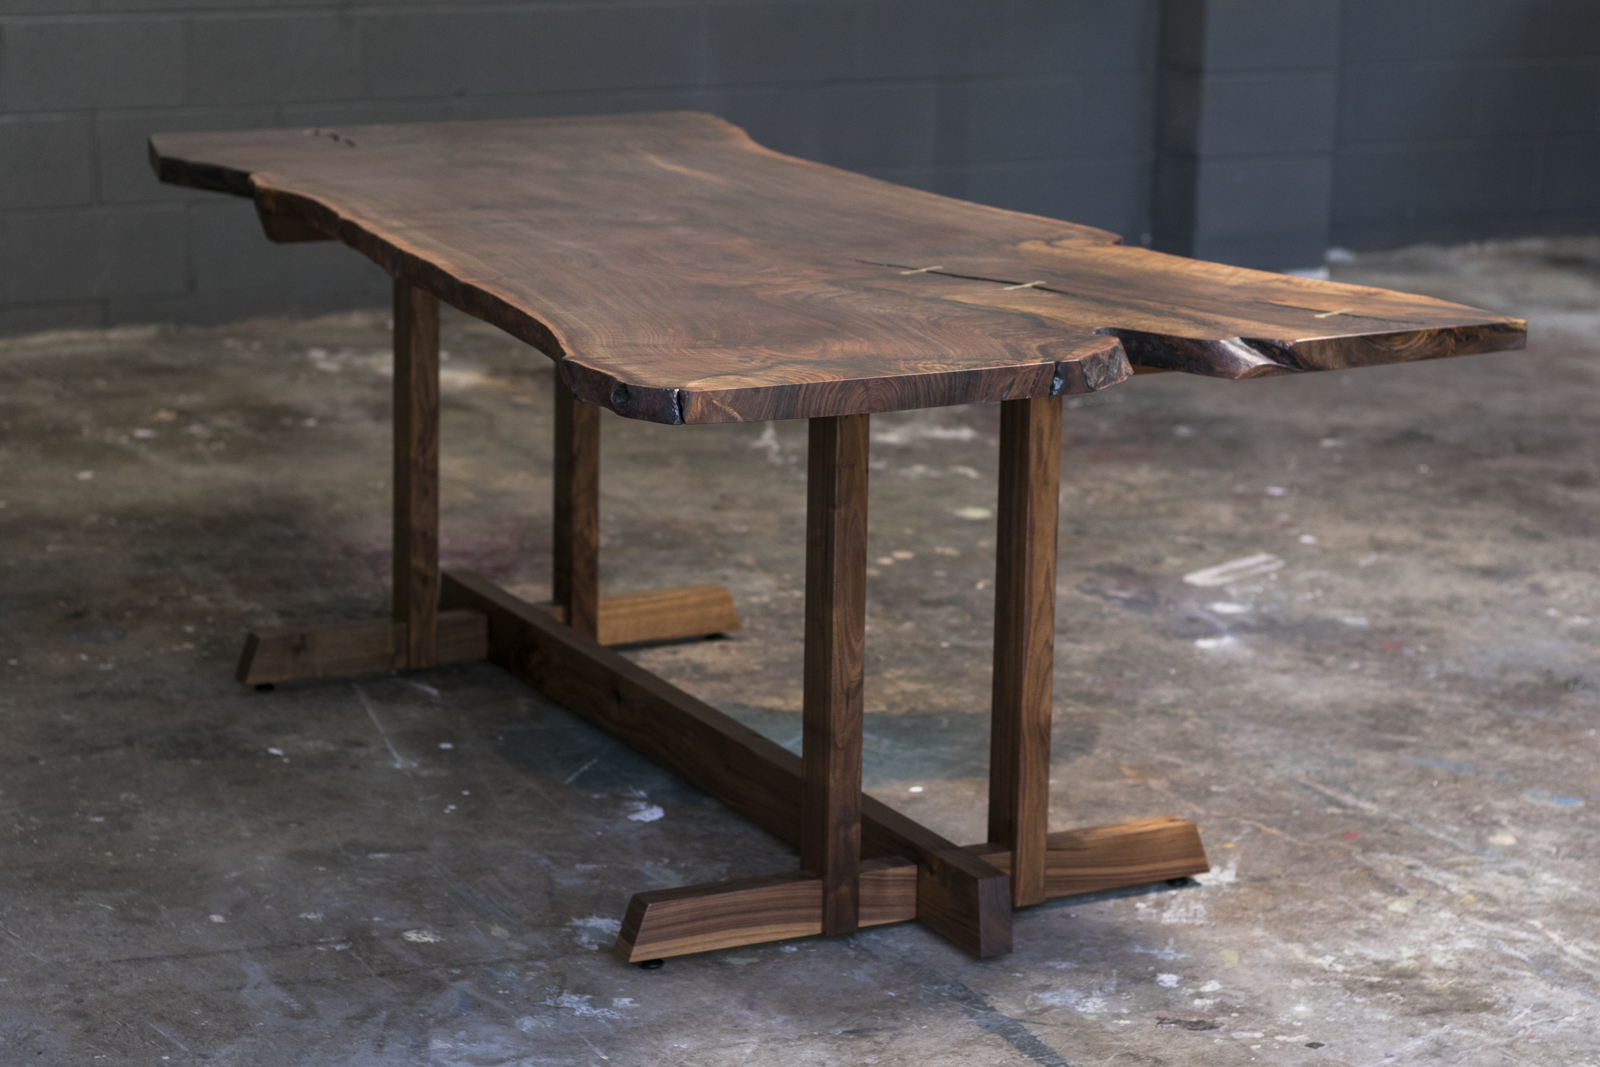 lake tahoe and sf bay area live edge walnut slab dining table trestle style solid wood base mez works furniture